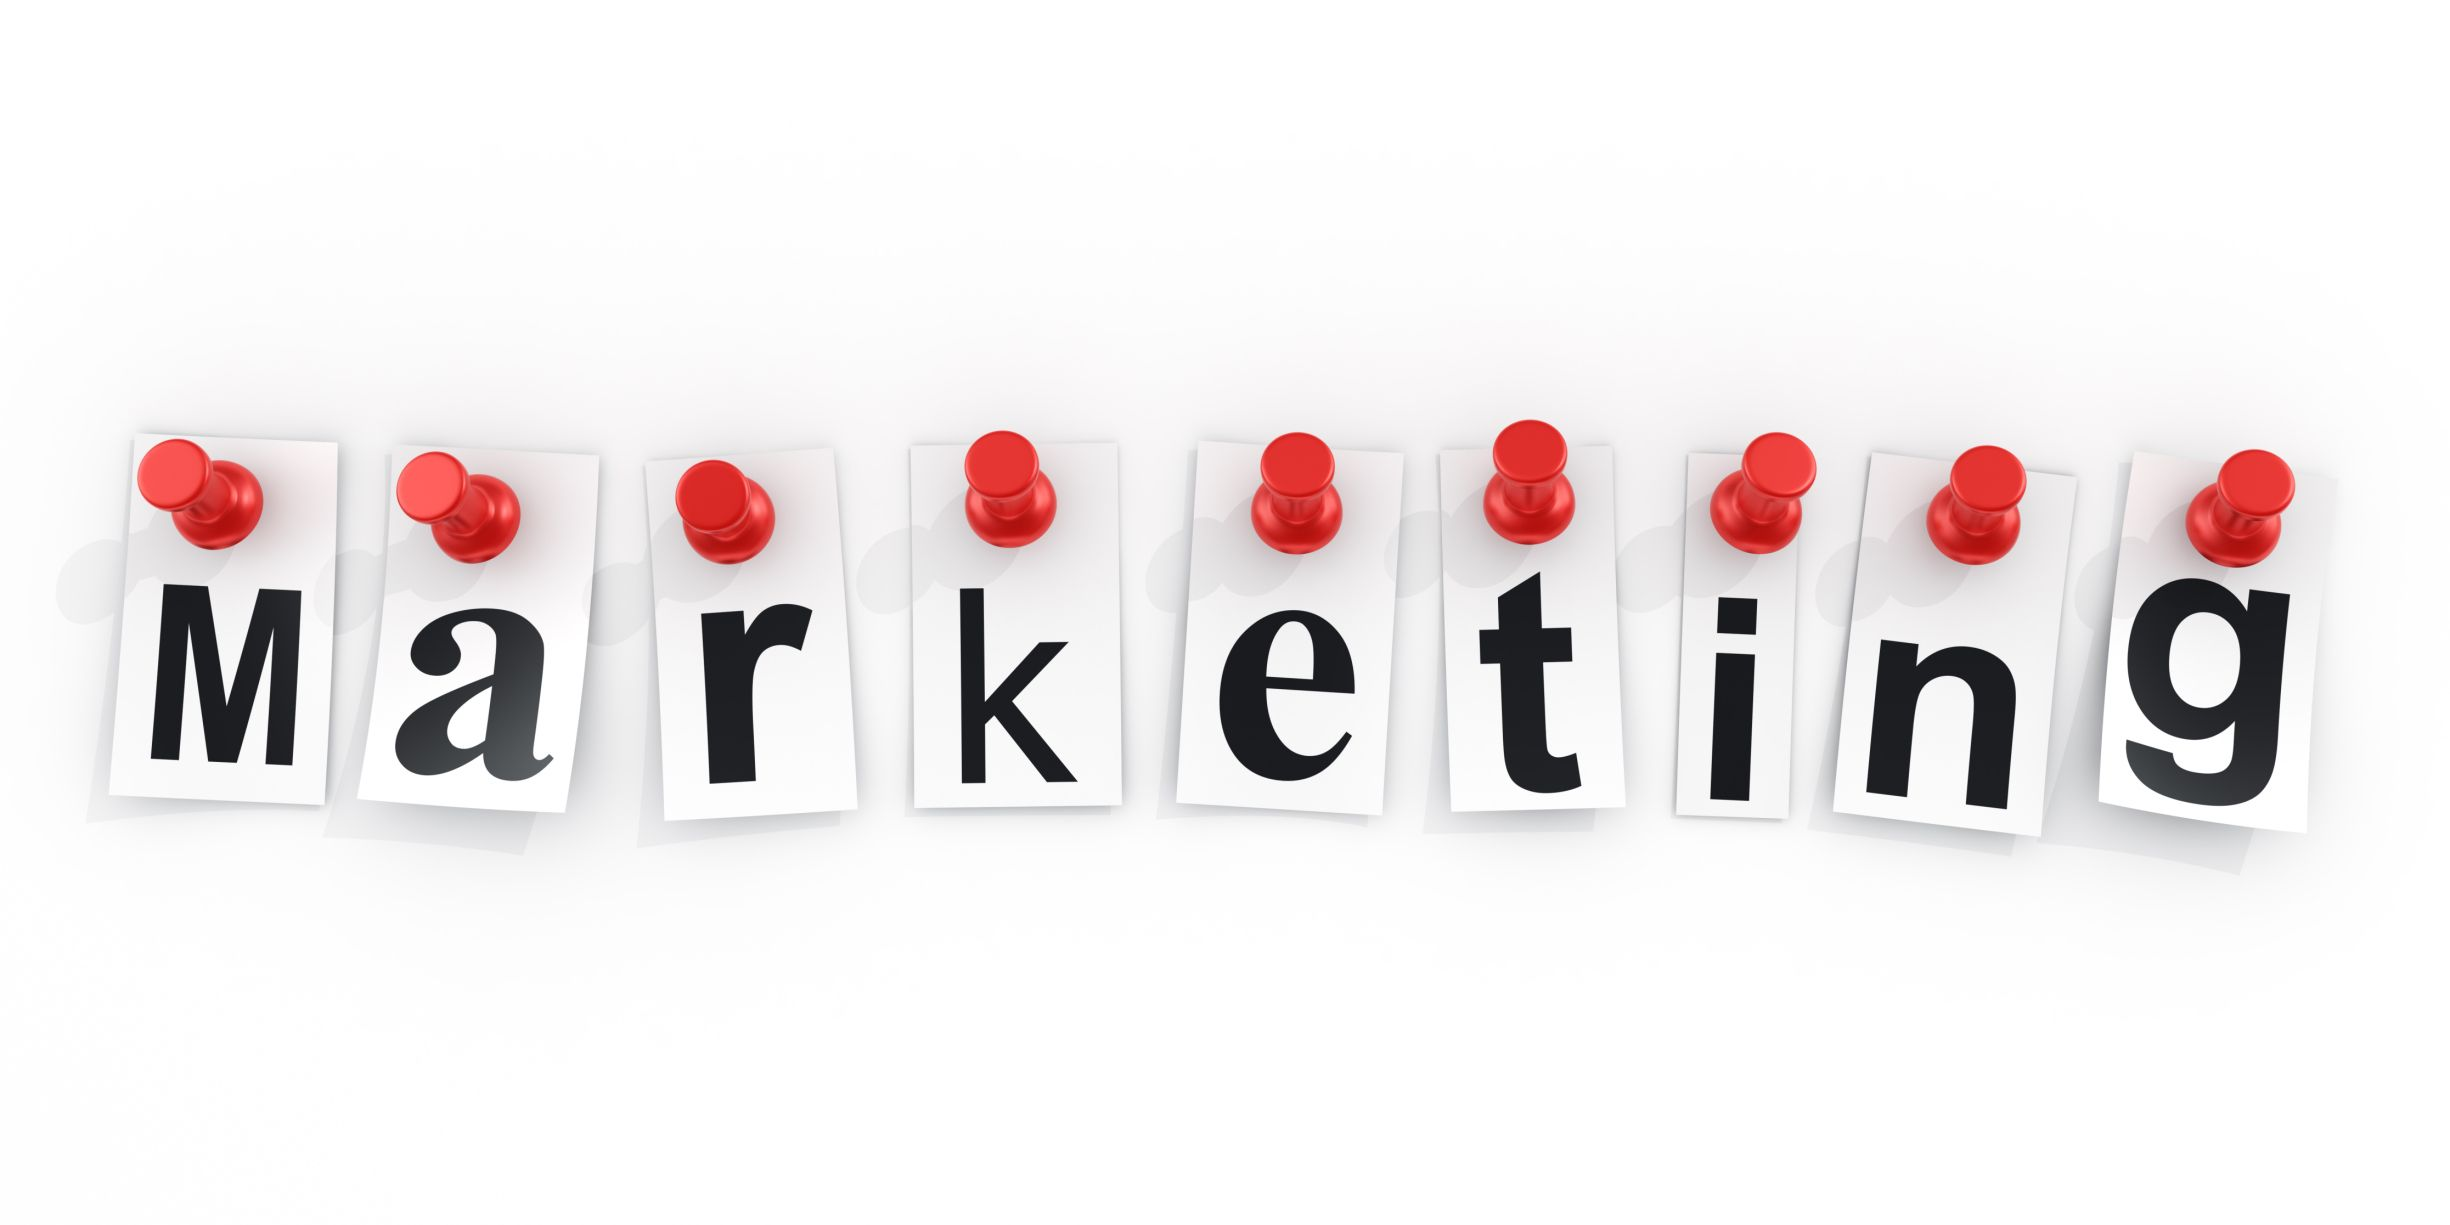 Promote your company - Make your business flourish